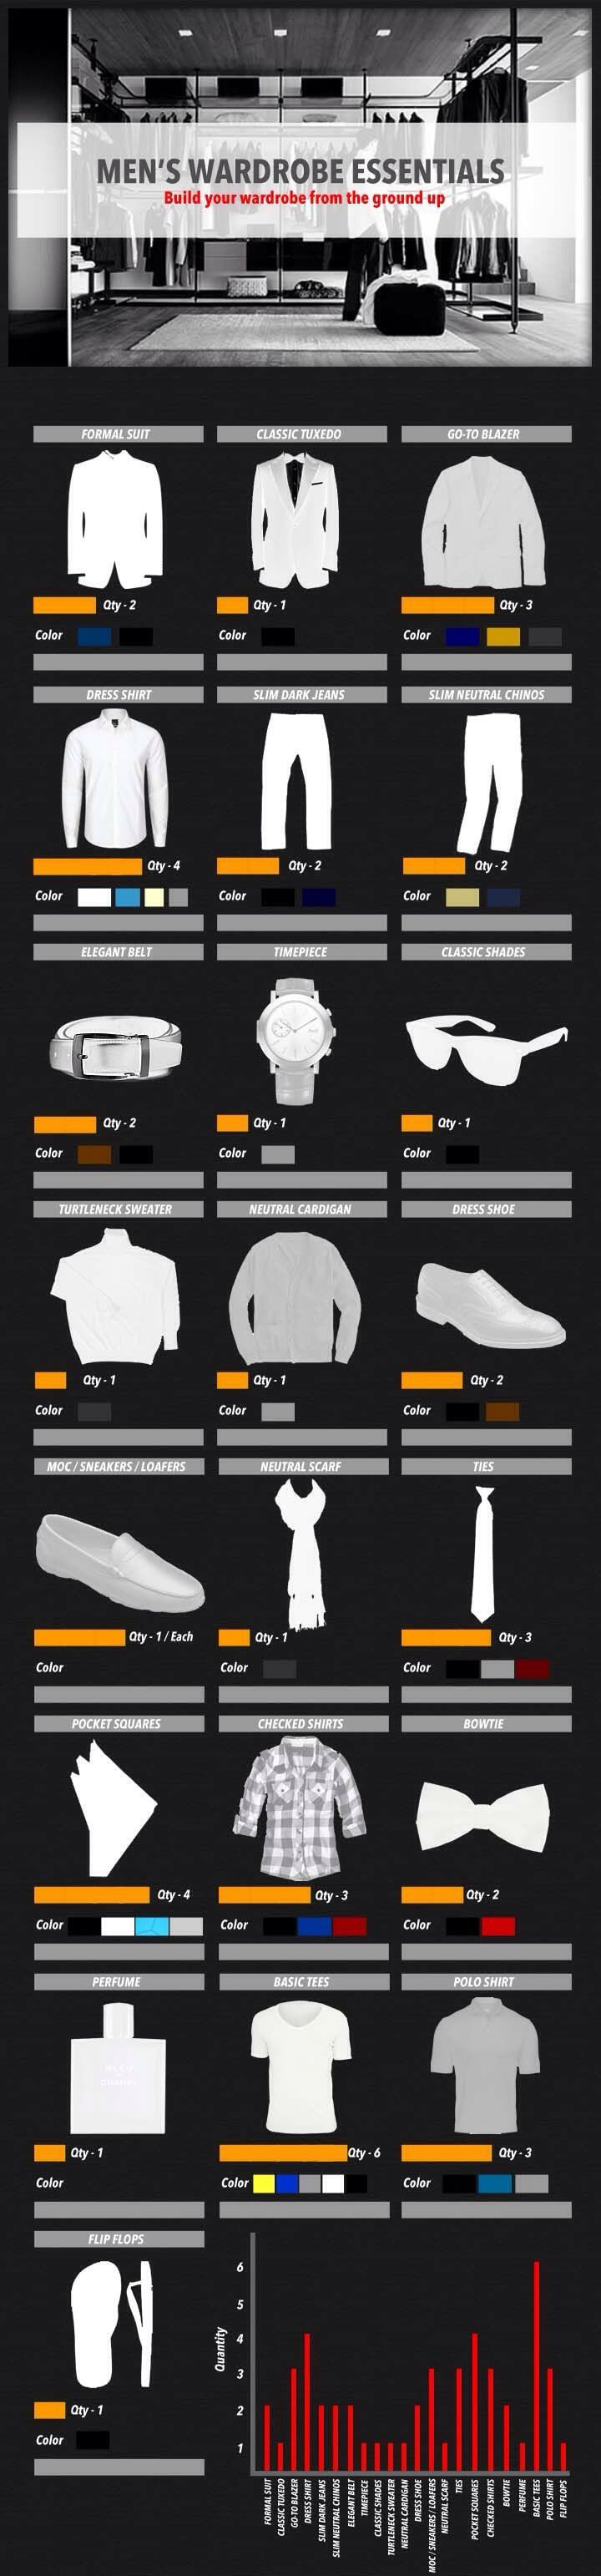 Men's Essential Wardrobe #musthave #menswear #color #style #howto #lesson #guide